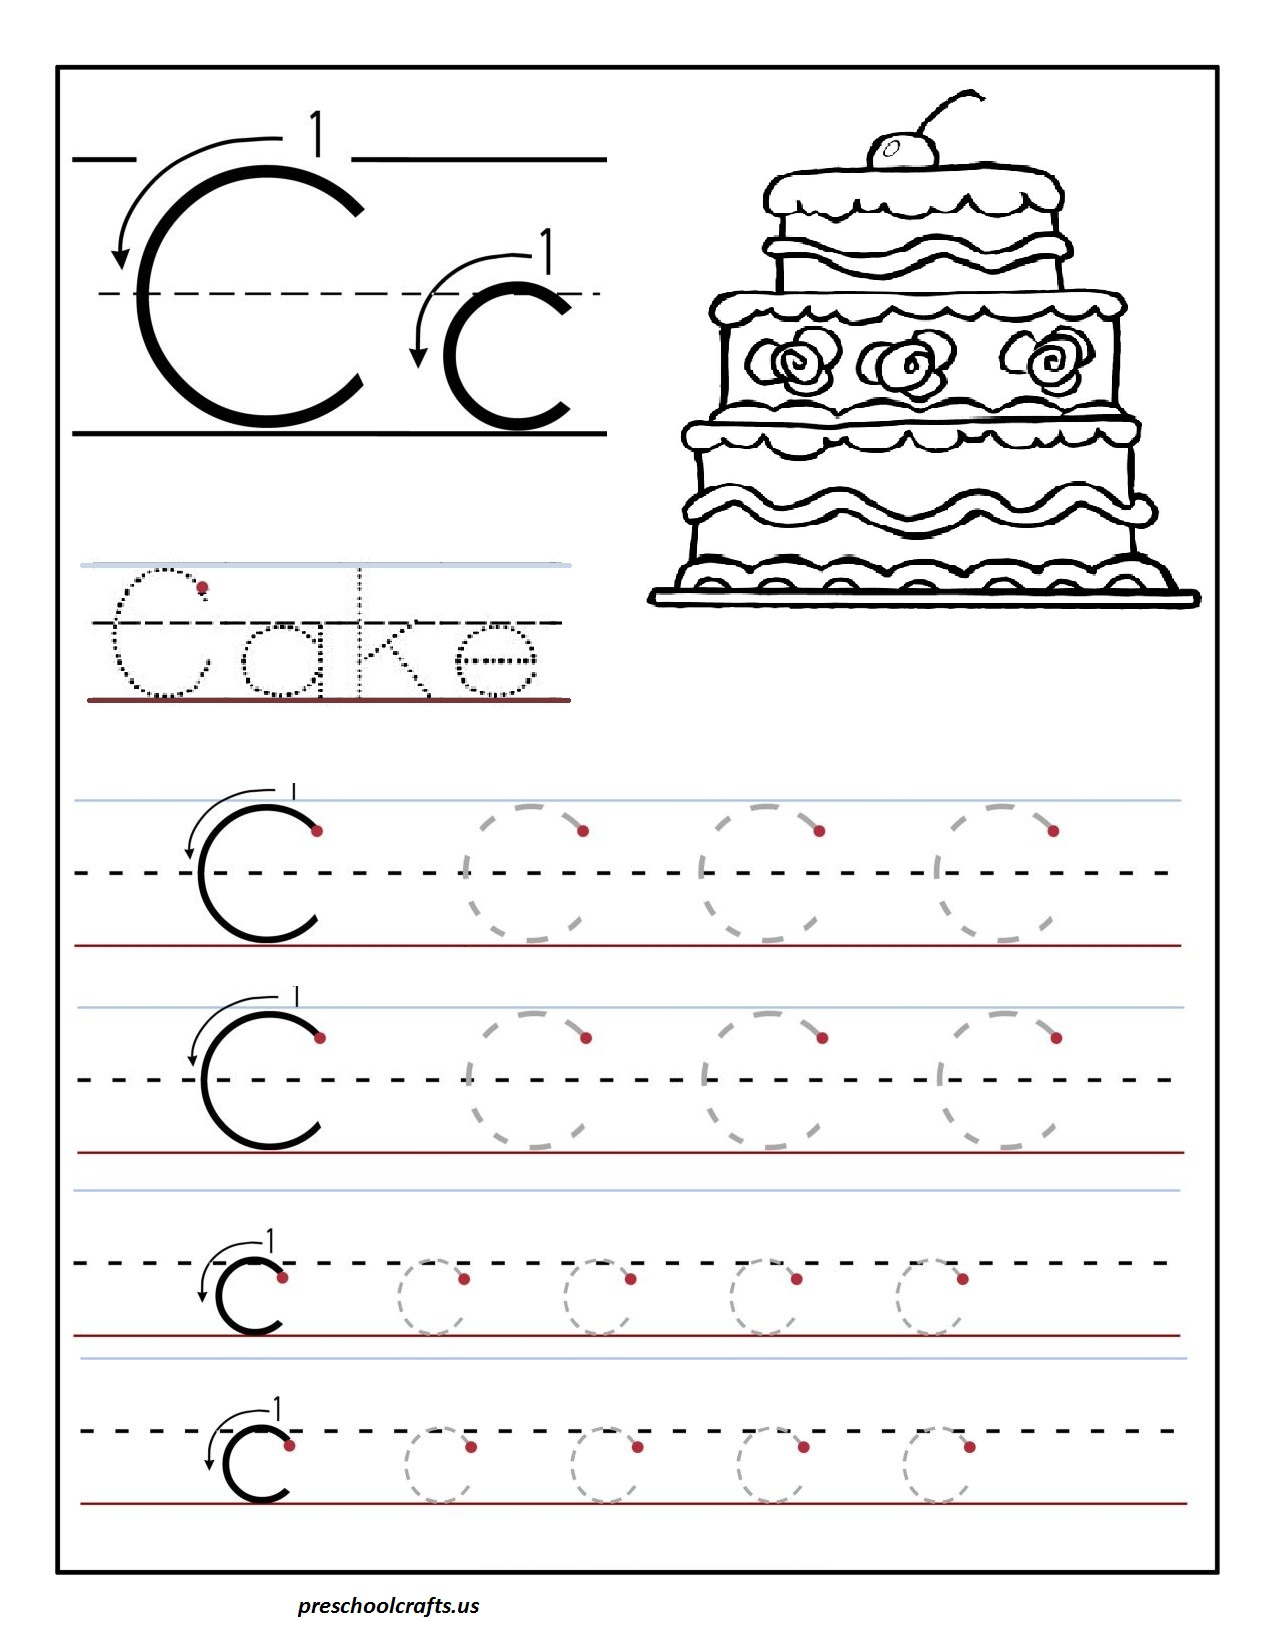 Preschool Kindergarten Printable Worksheets : Printable letter c tracing worksheets for